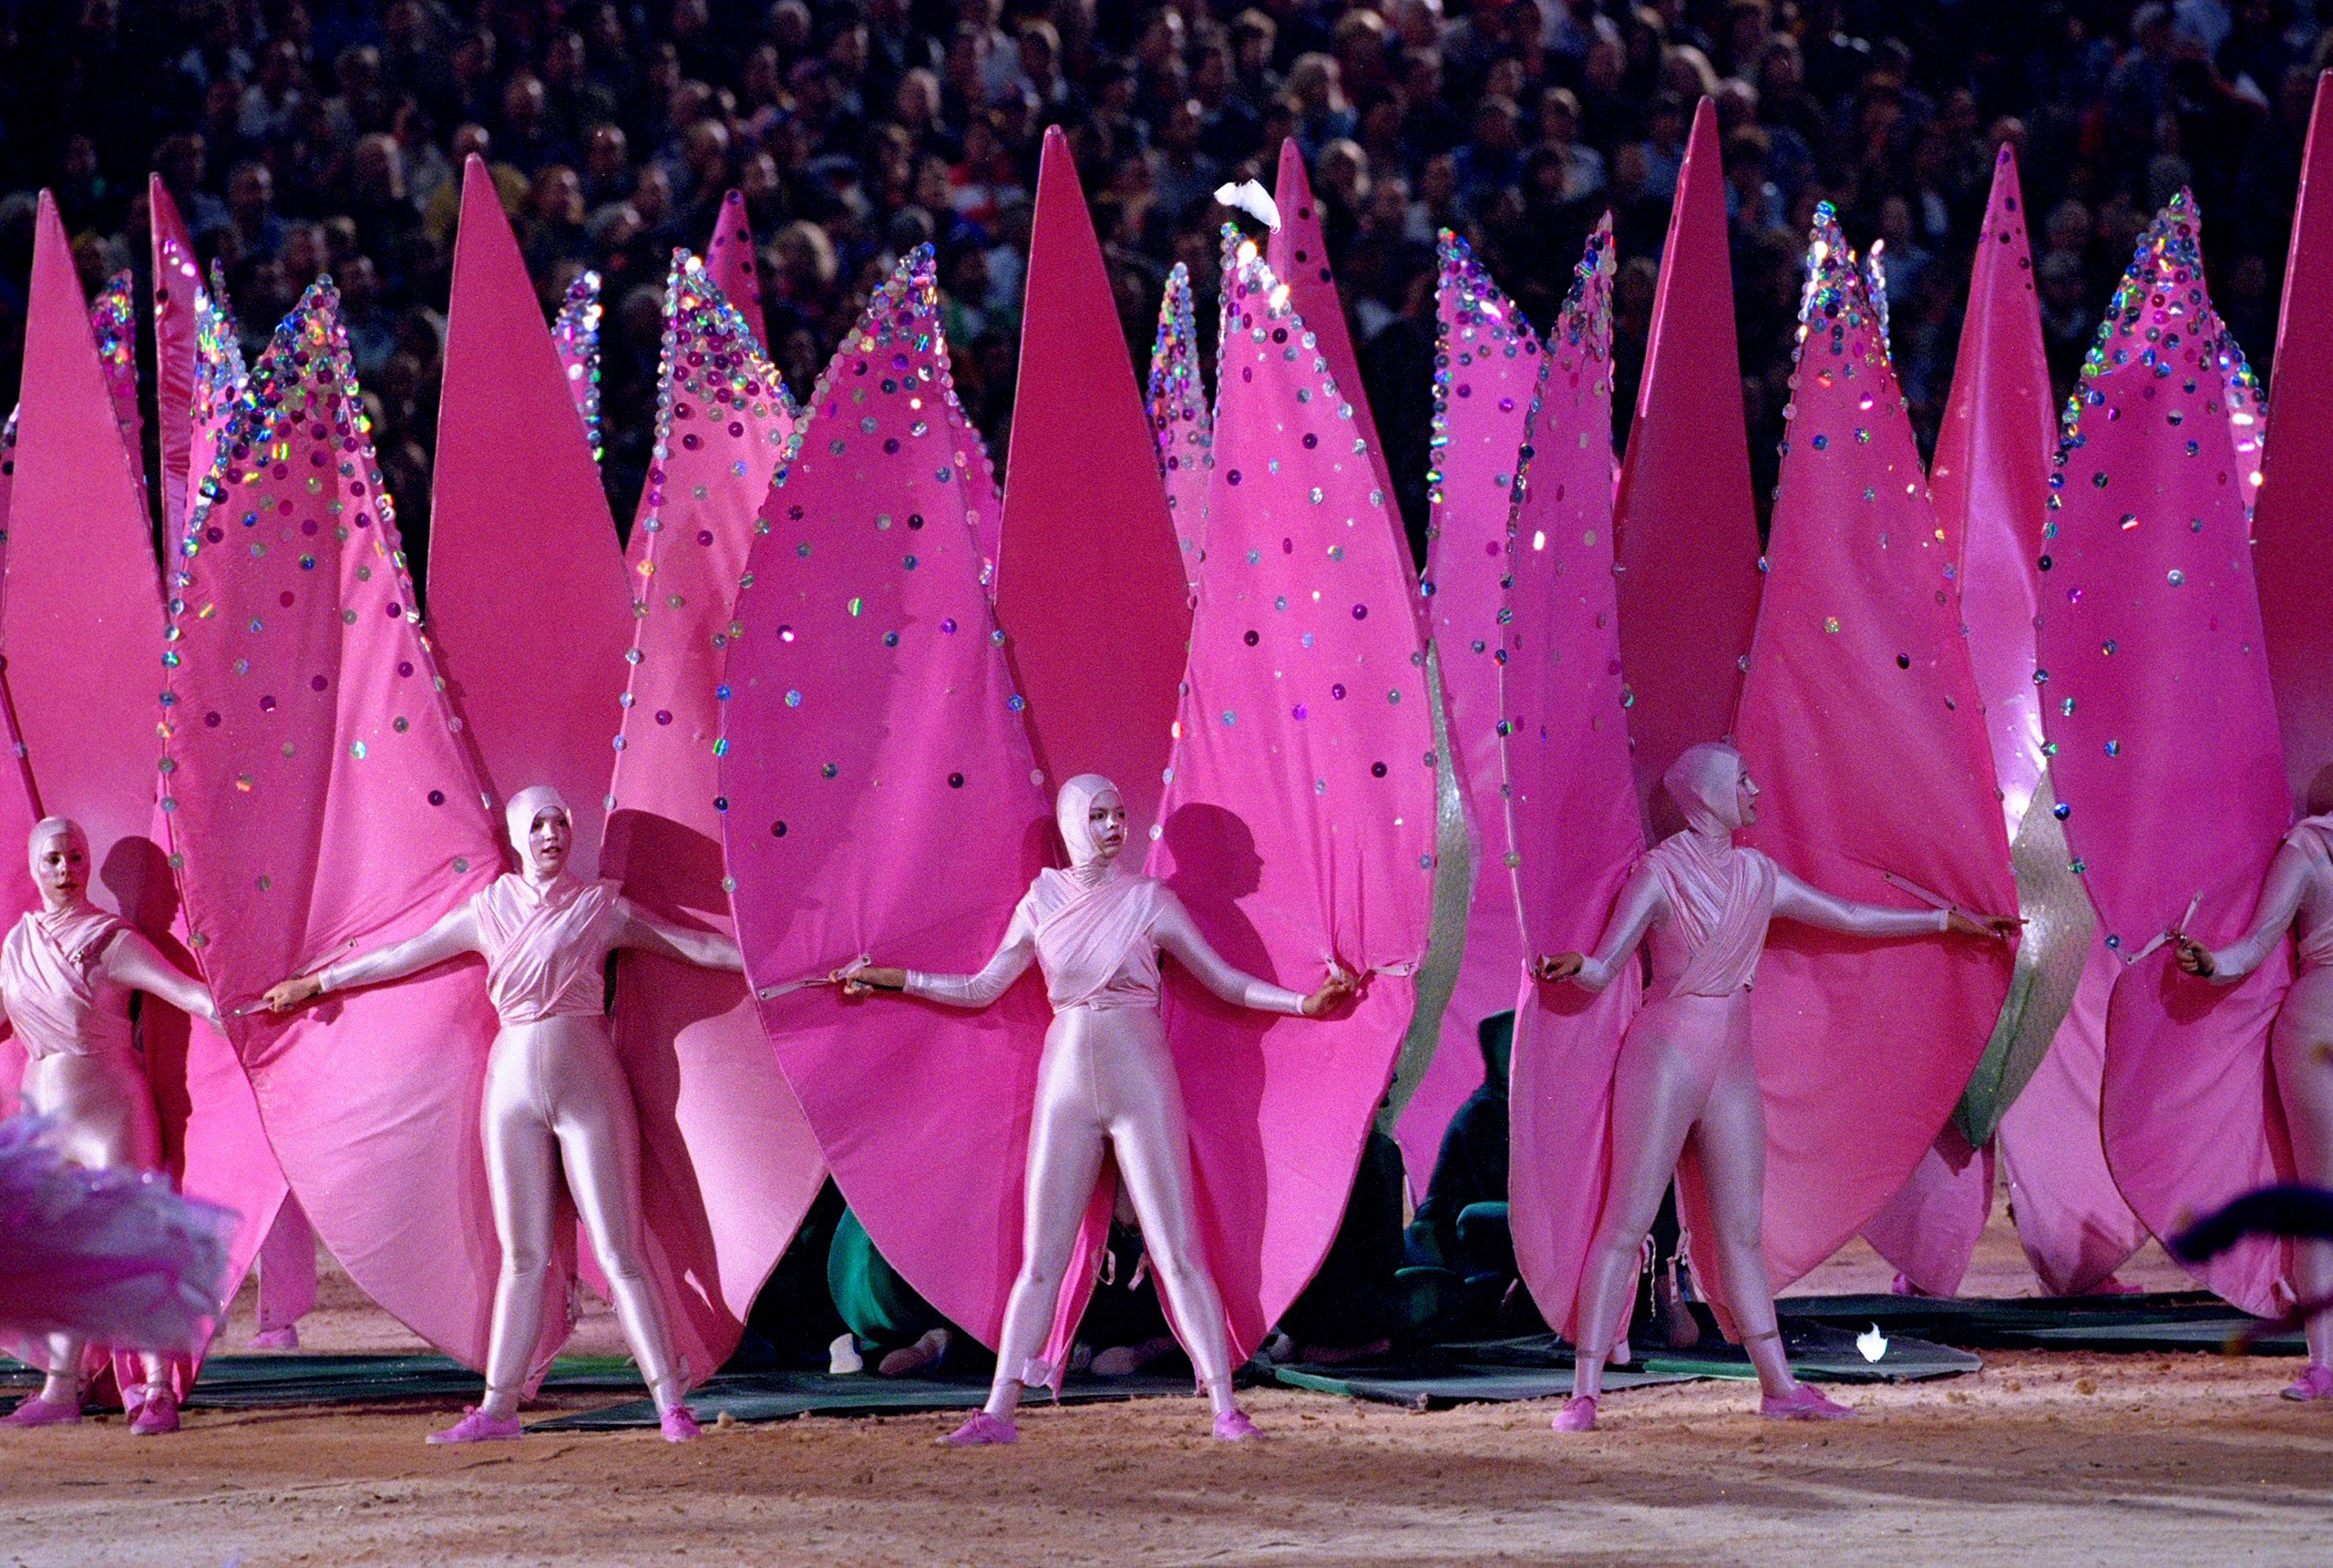 Sydney, 2000Performers dressed as pink petals step into formation to represent some of Australia's indigenous flowers.